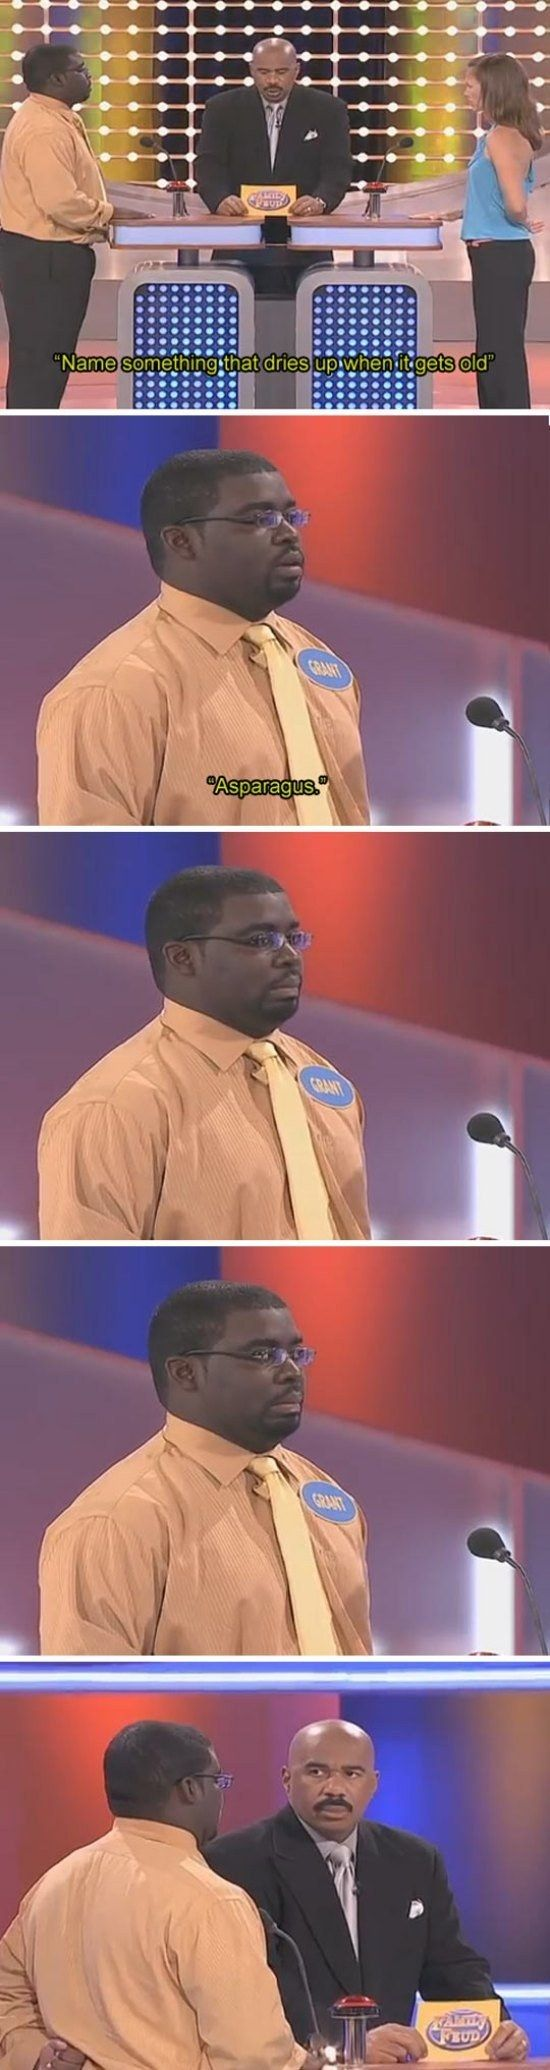 """The moment when even the contestant knew he had failed. 